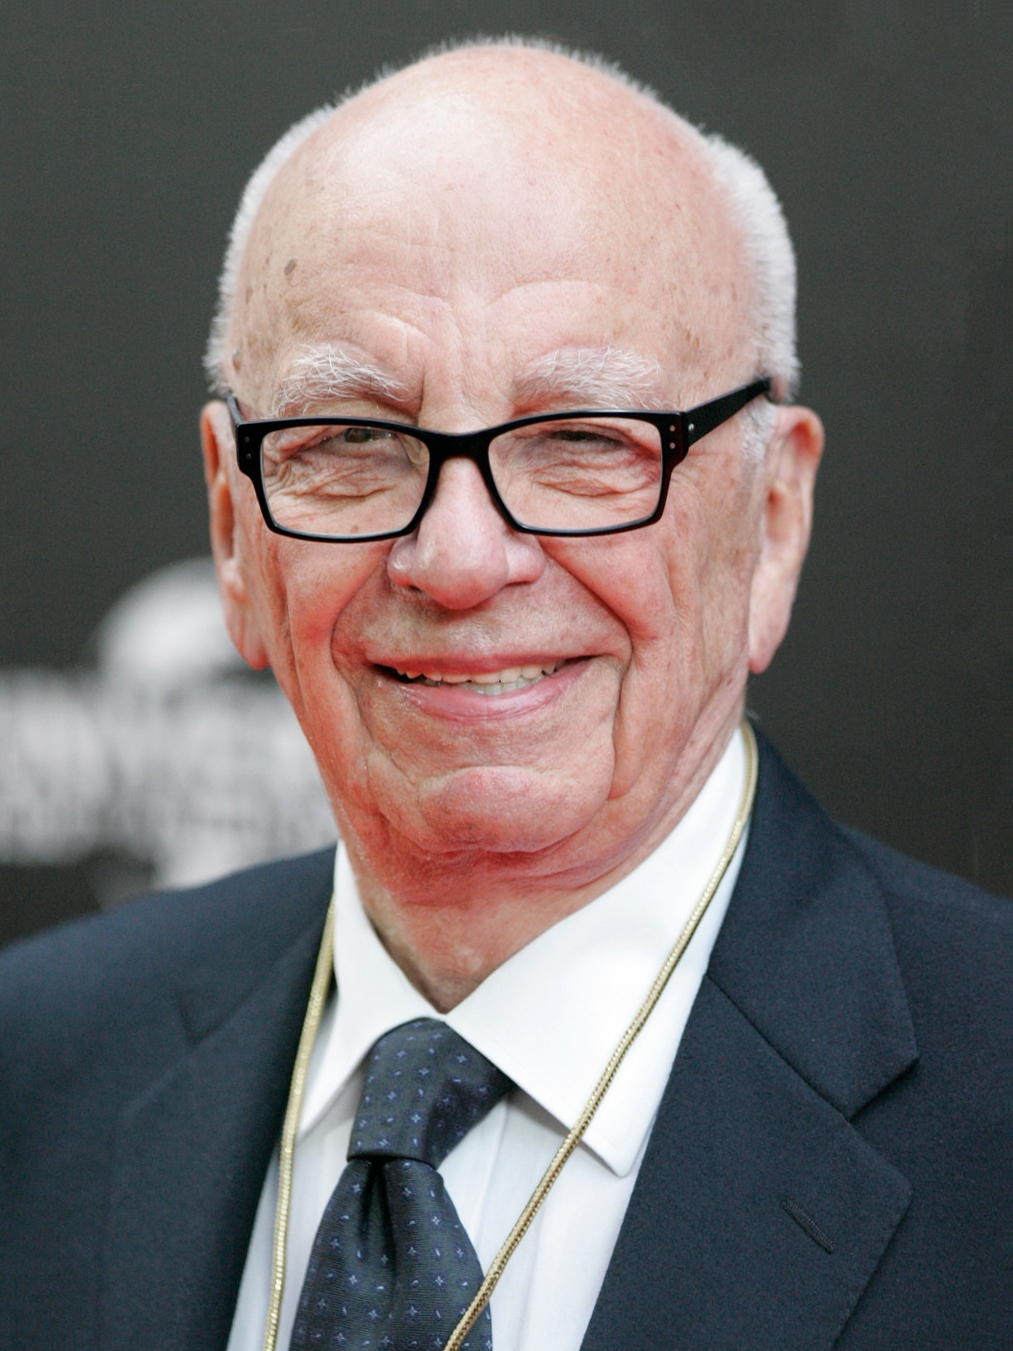 Rupert Murdoch earned a  million dollar salary, leaving the net worth at 14000 million in 2017